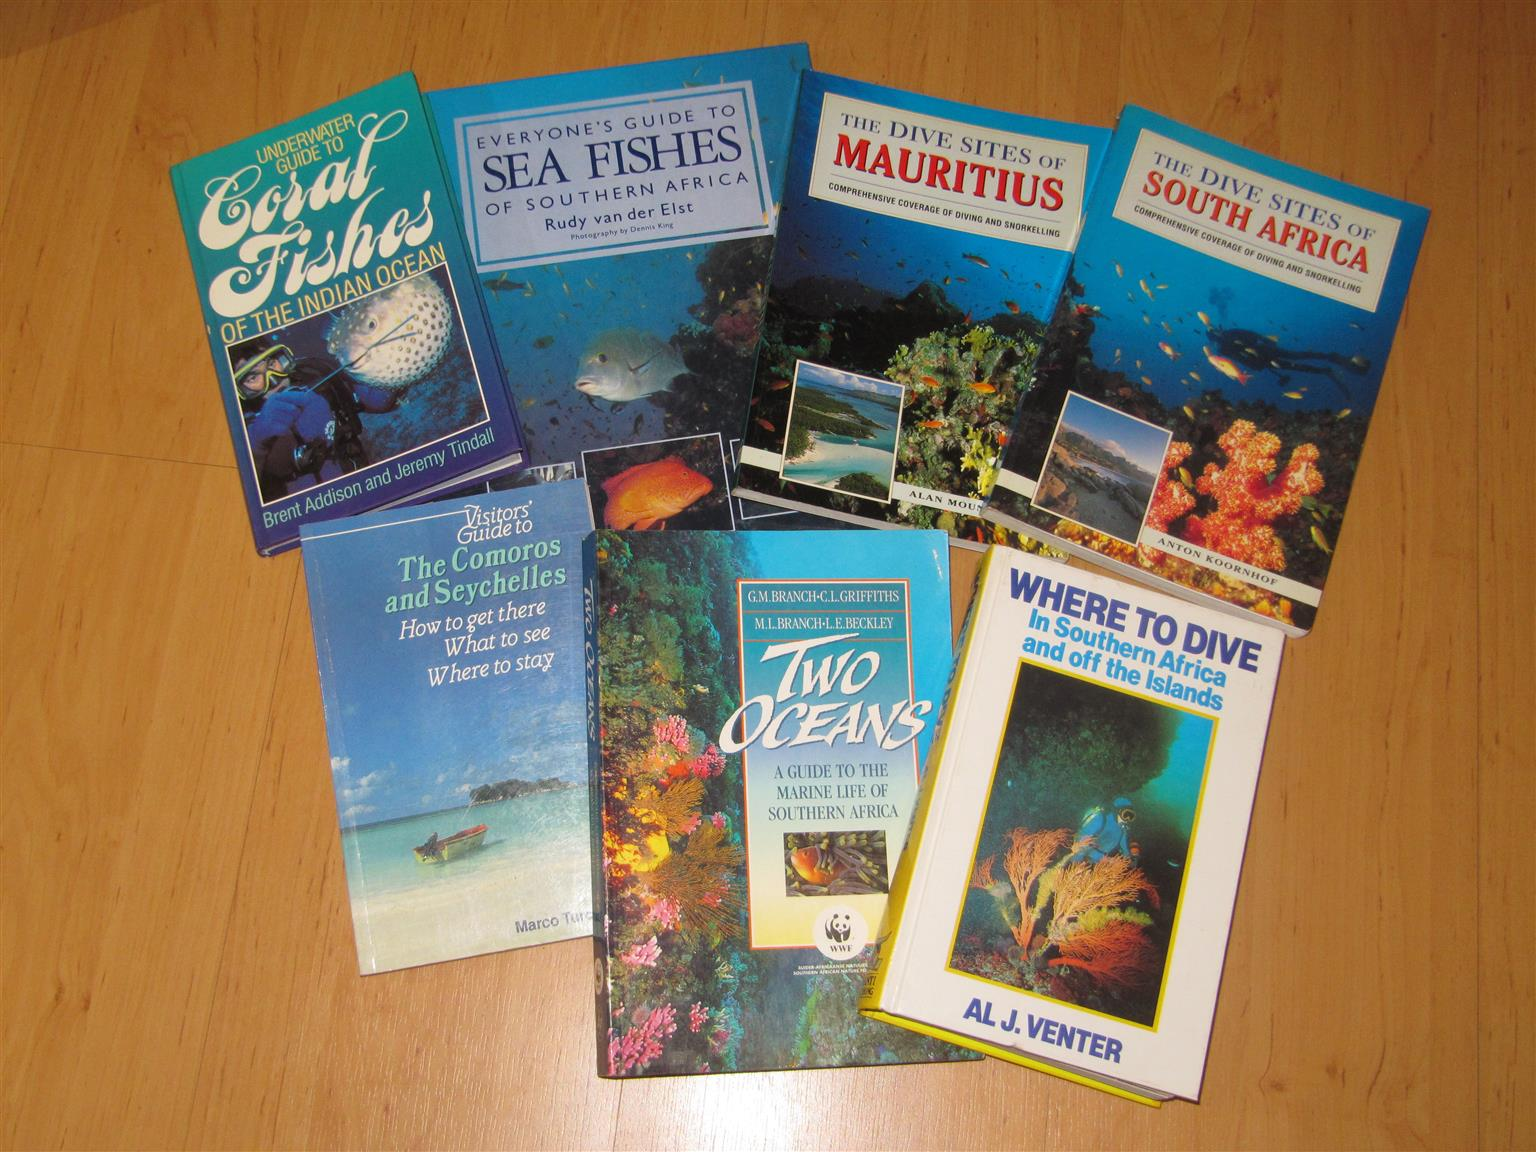 7 books of Sea Fishes and Diving sites in Excellent conditions